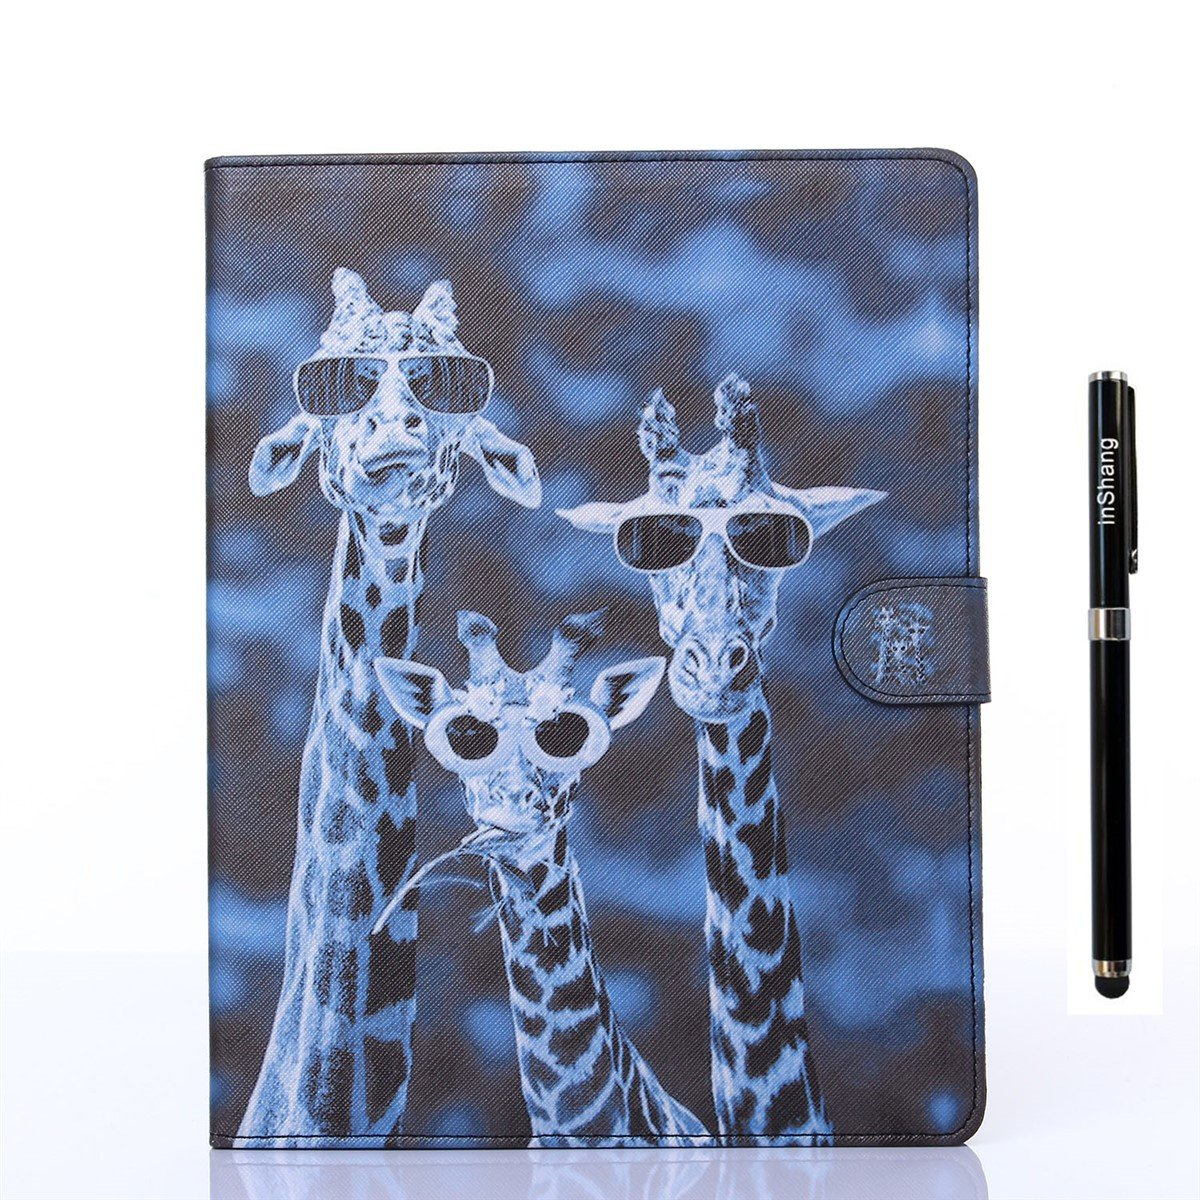 inShang Case for iPad mini 1, mini 2, mini 3, 7.9 inch Retina display, With Color Painting Pattern Stand Cover+1pc High end class business stylus Pen